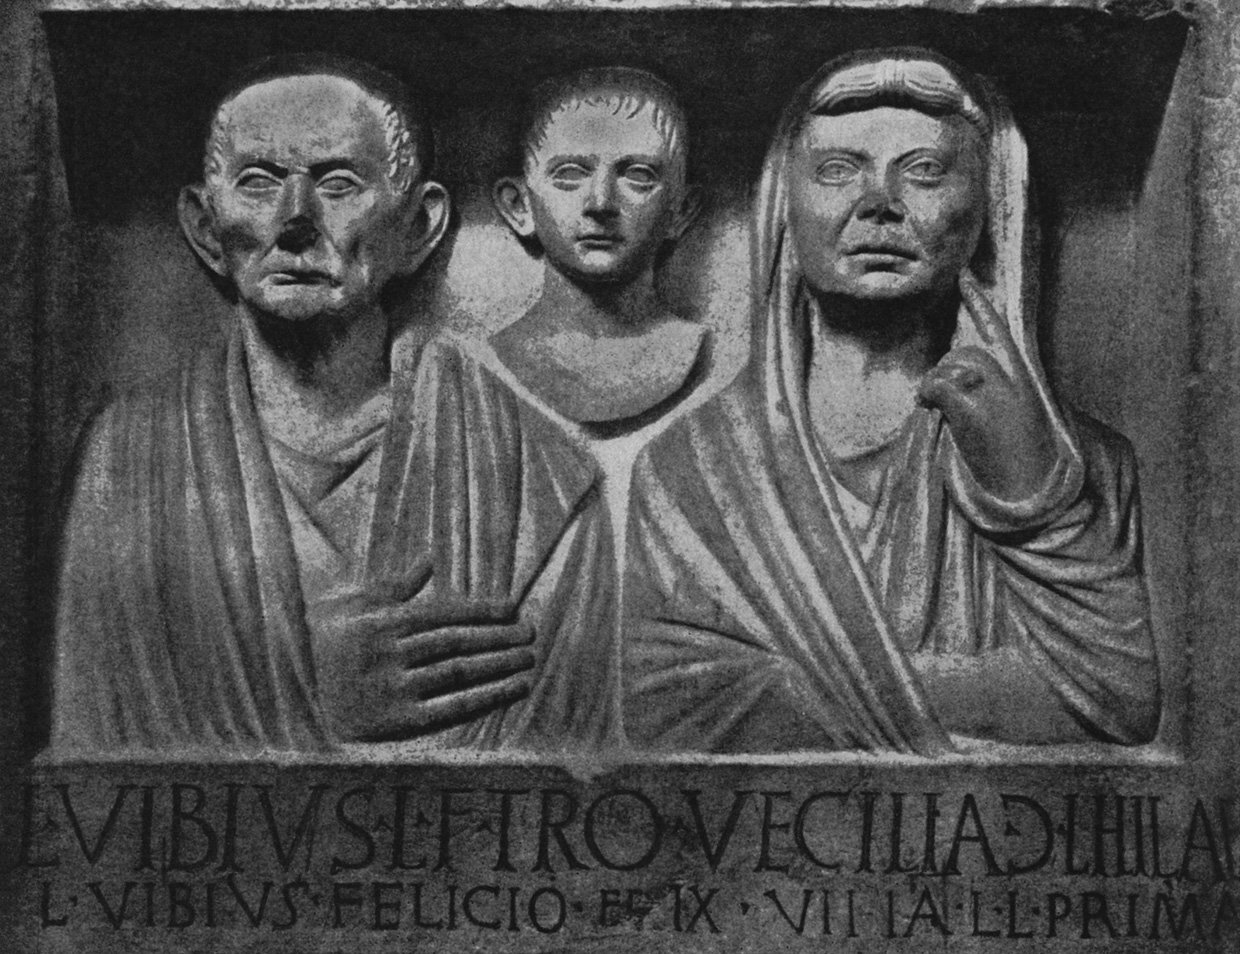 Headstone of the Vibii. Limestone. Second half of the 1st century BCE. Rome, Vatican Museums, Chiaramonti Museum, XLIV. 21